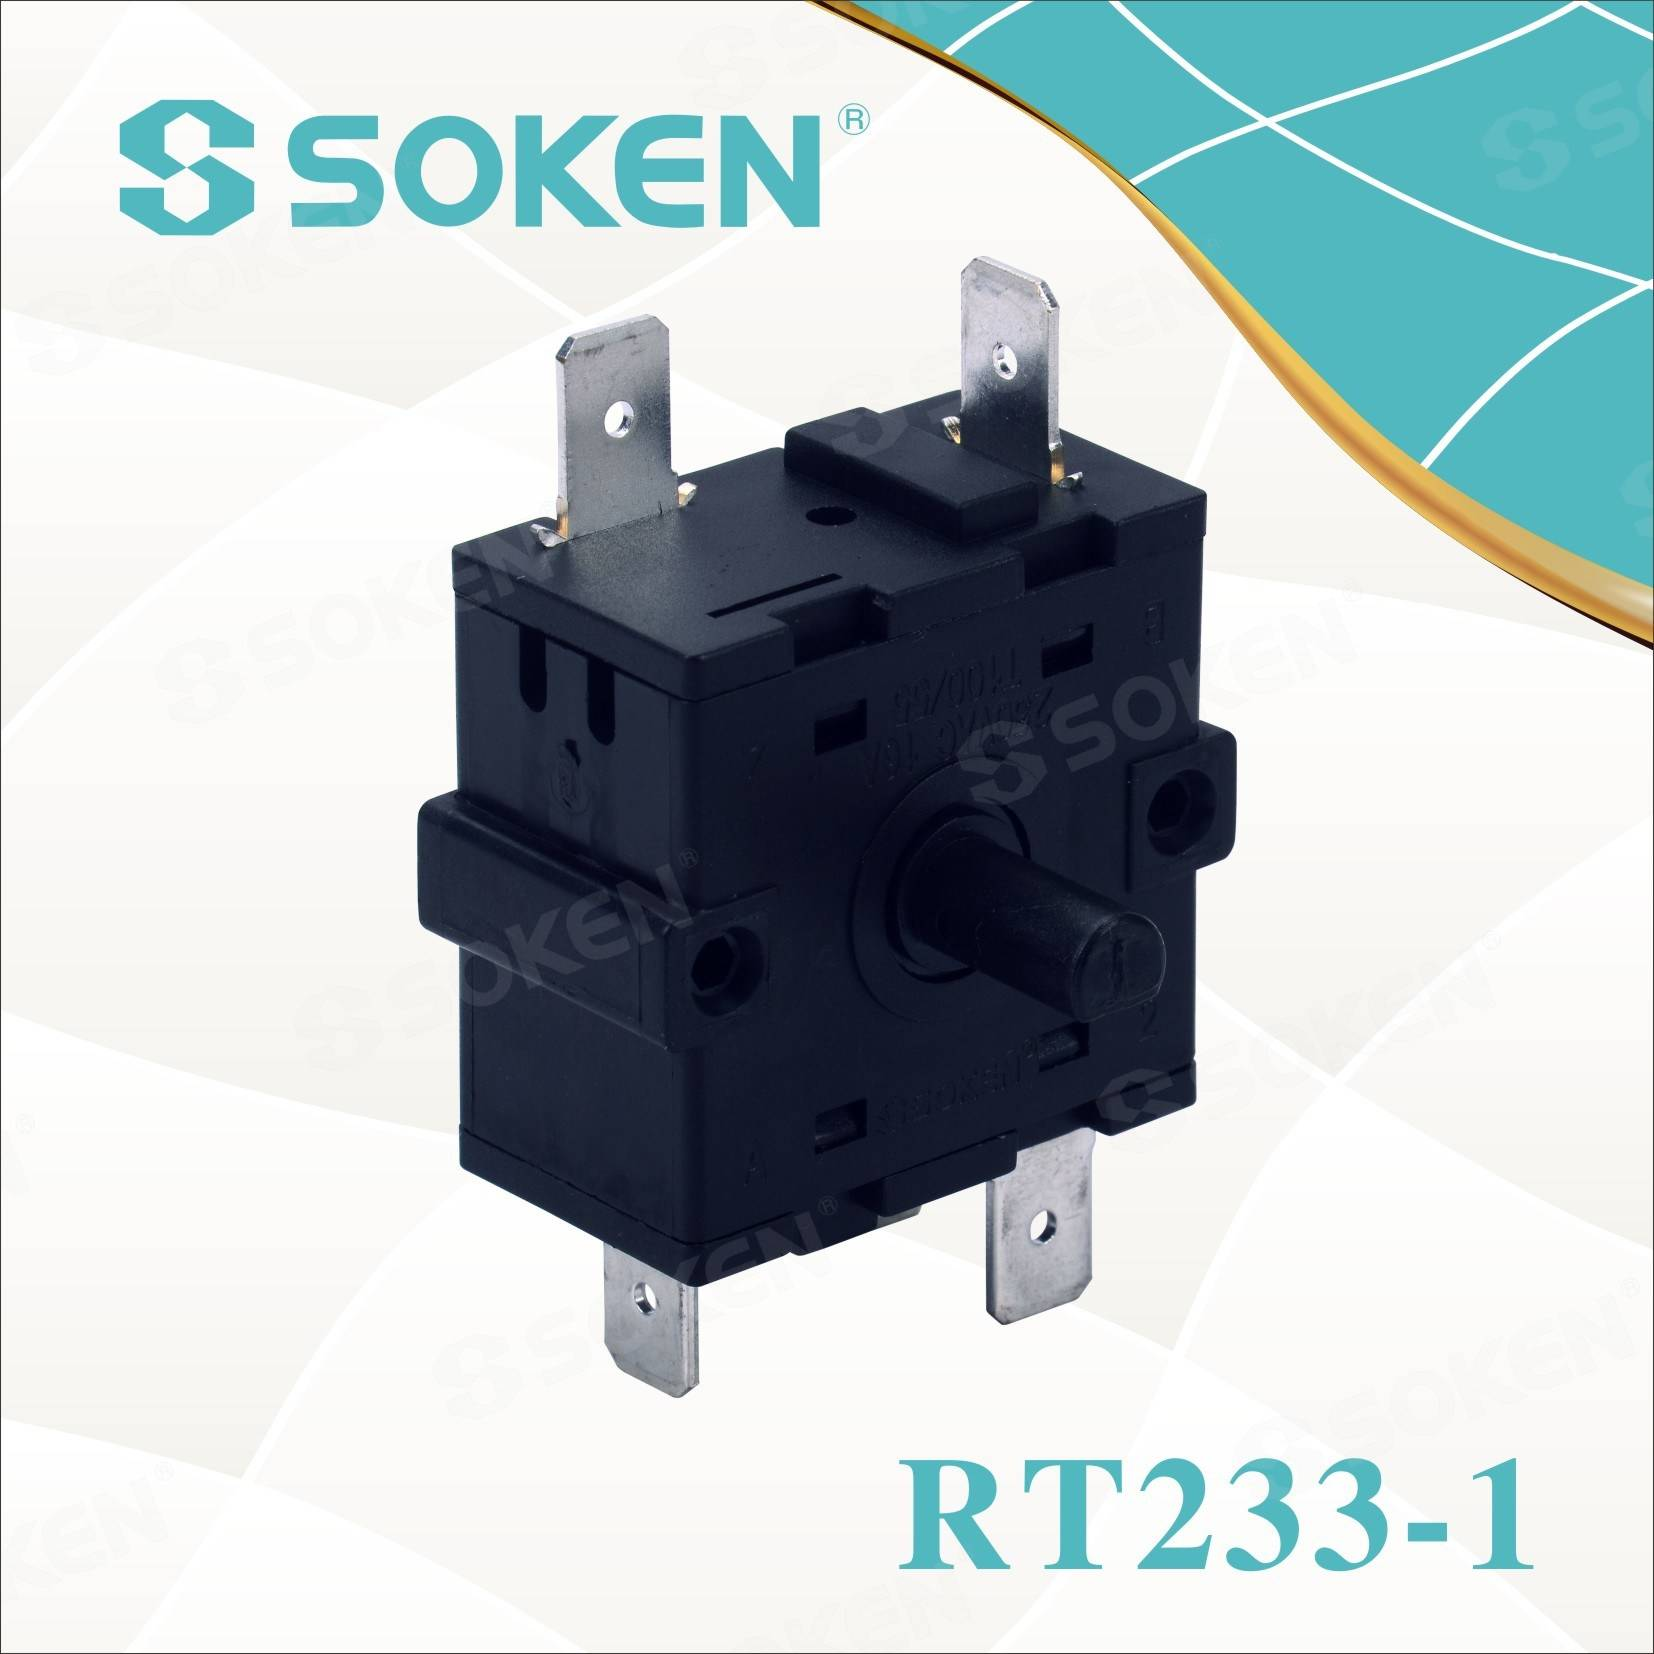 Supply OEM/ODM Sub-miniature Rocker Switch -